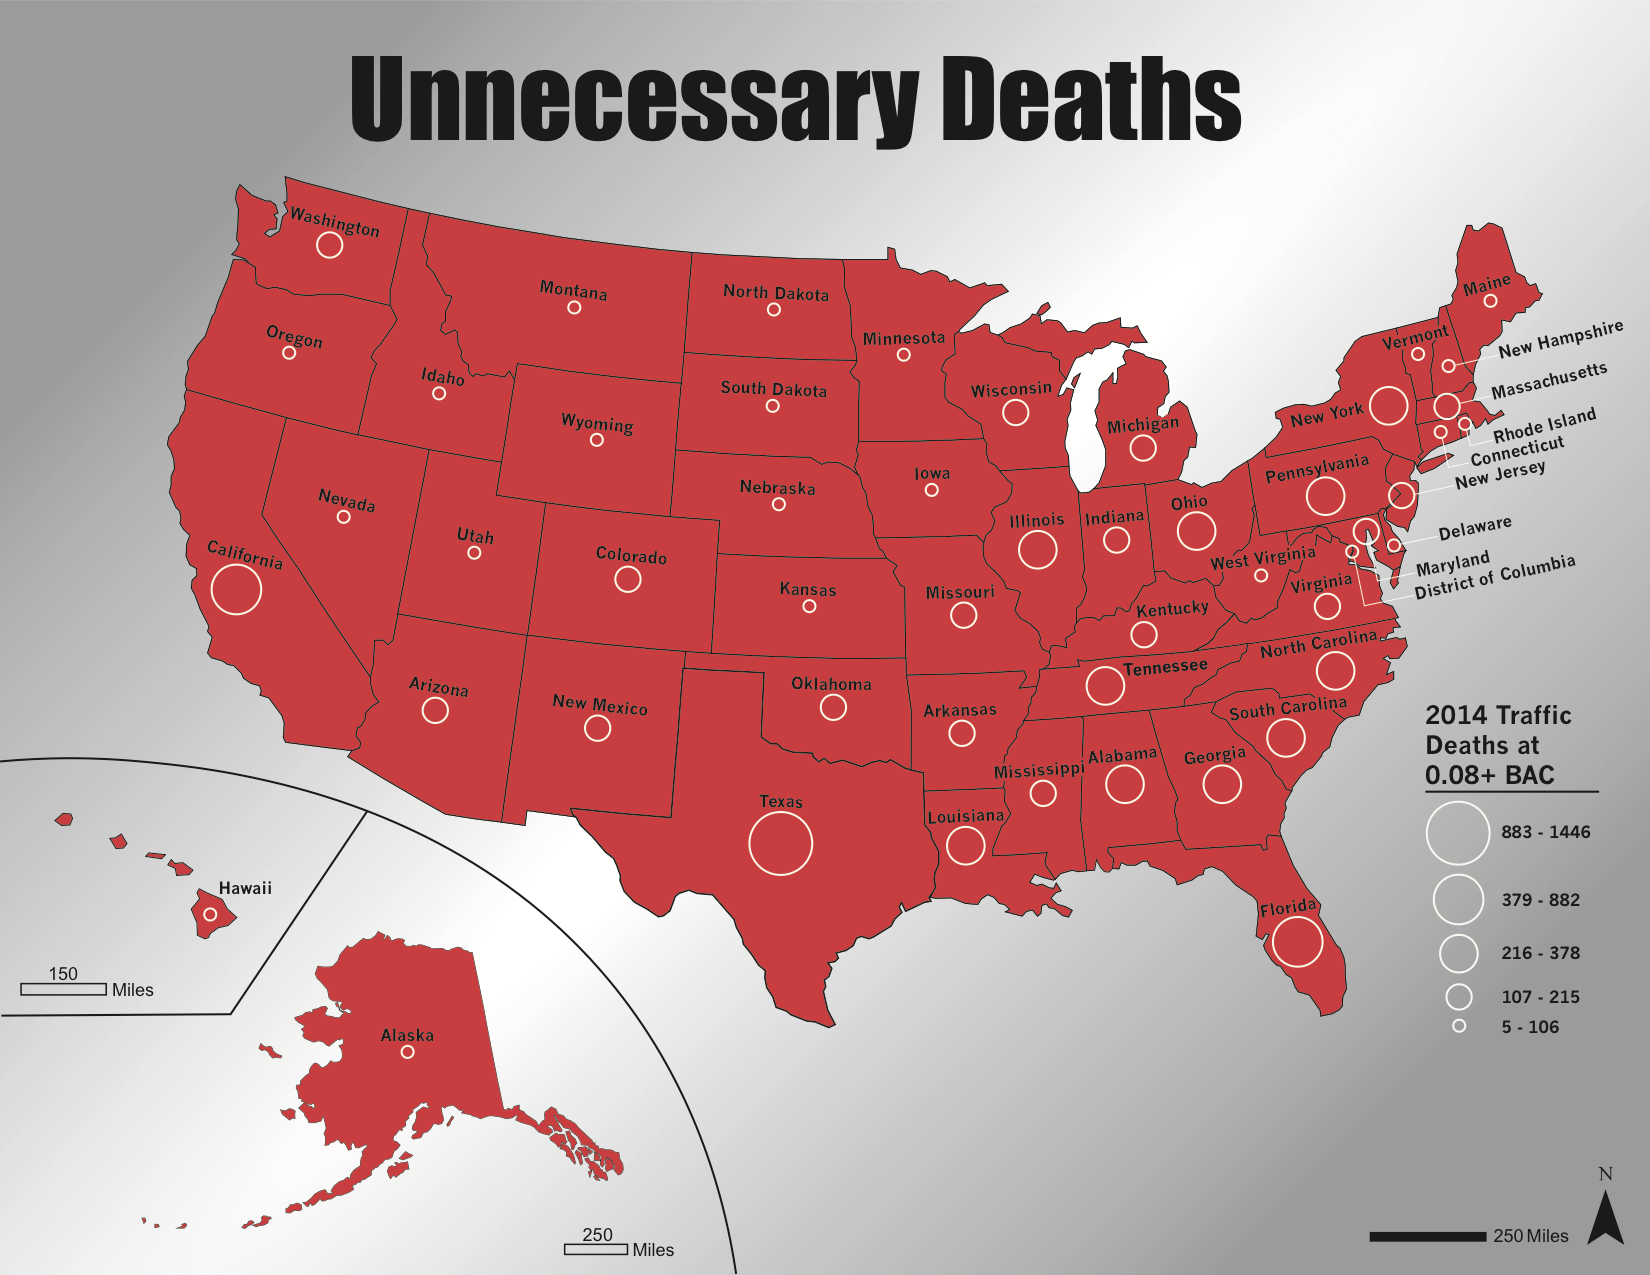 the terrible tragedies caused by drunk driving in the united states They aren't the ones drunk driving dropped to an all time low because of a recession in the united states one of many such preventable tragedies.